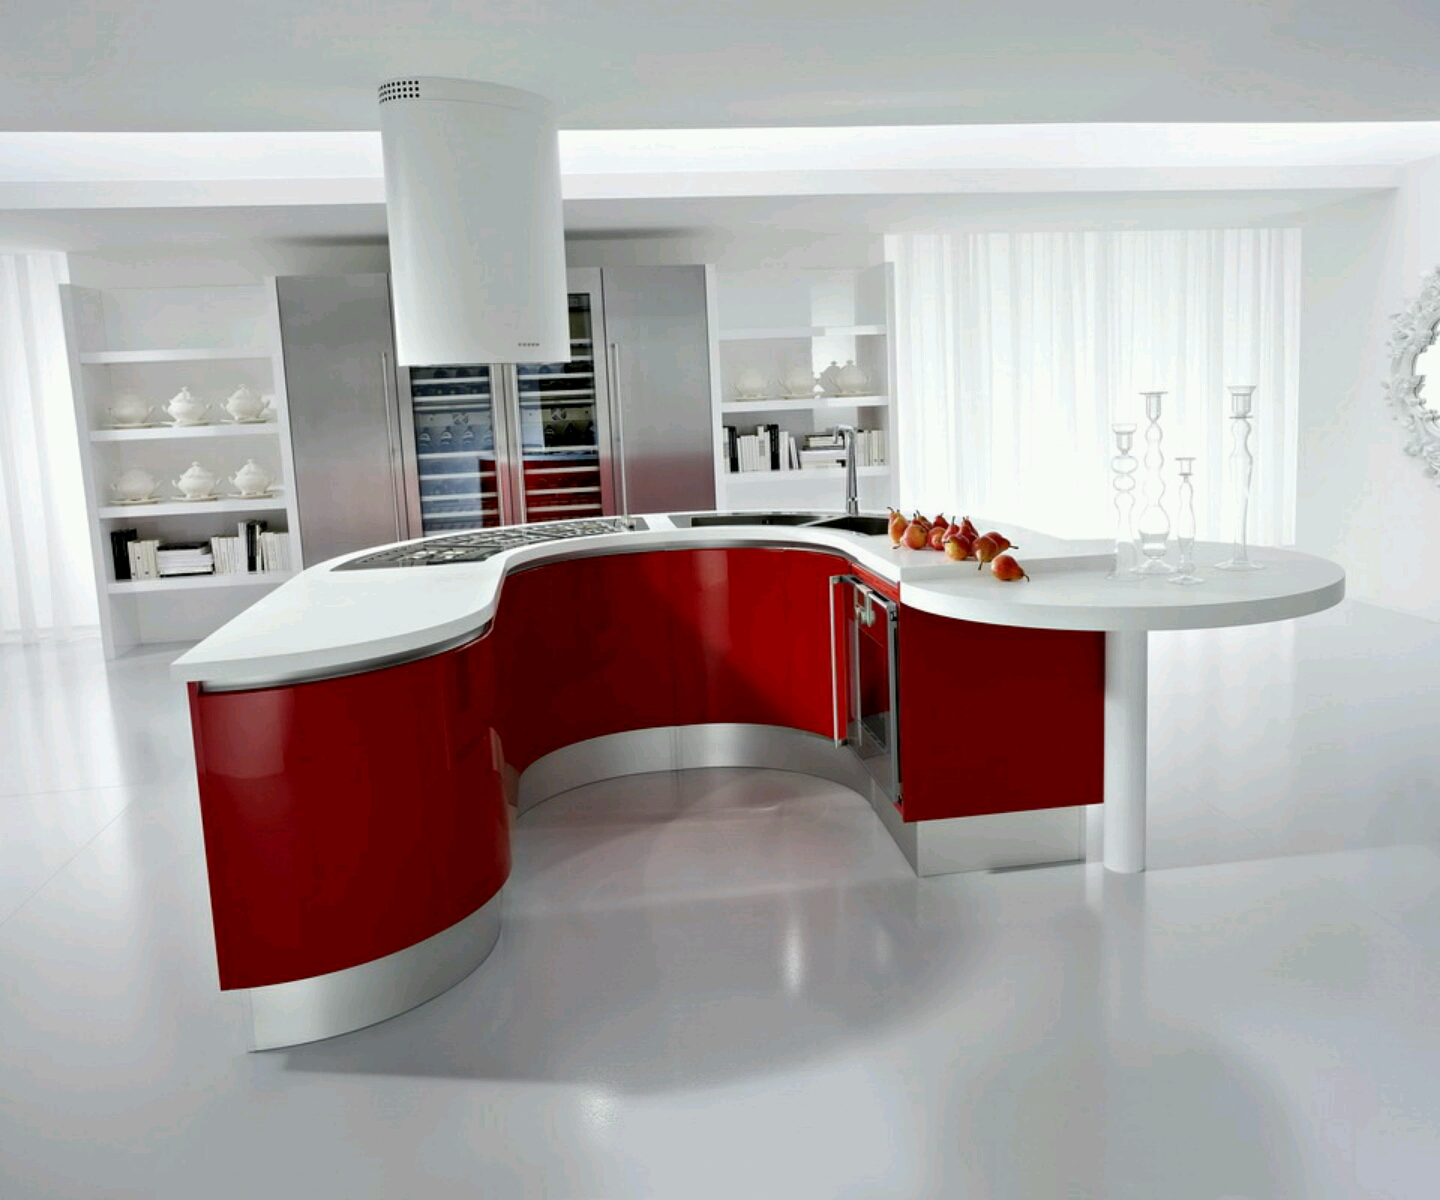 Modern kitchen cabinets designs ideas furniture gallery for Contemporary kitchen design ideas